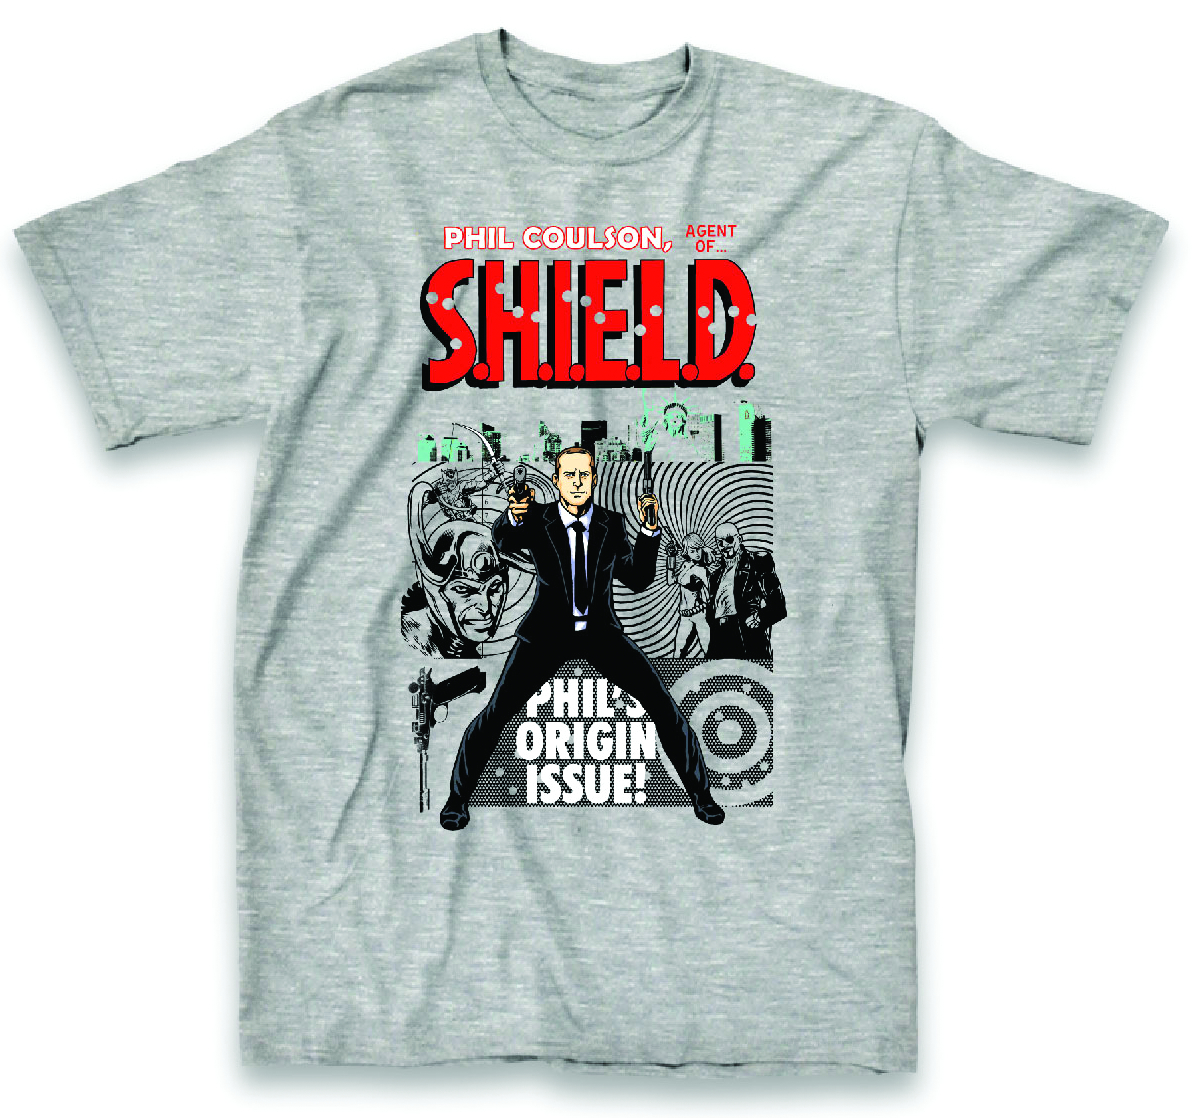 SHIELD AGENT PHIL COULSON HEATHER T/S MED